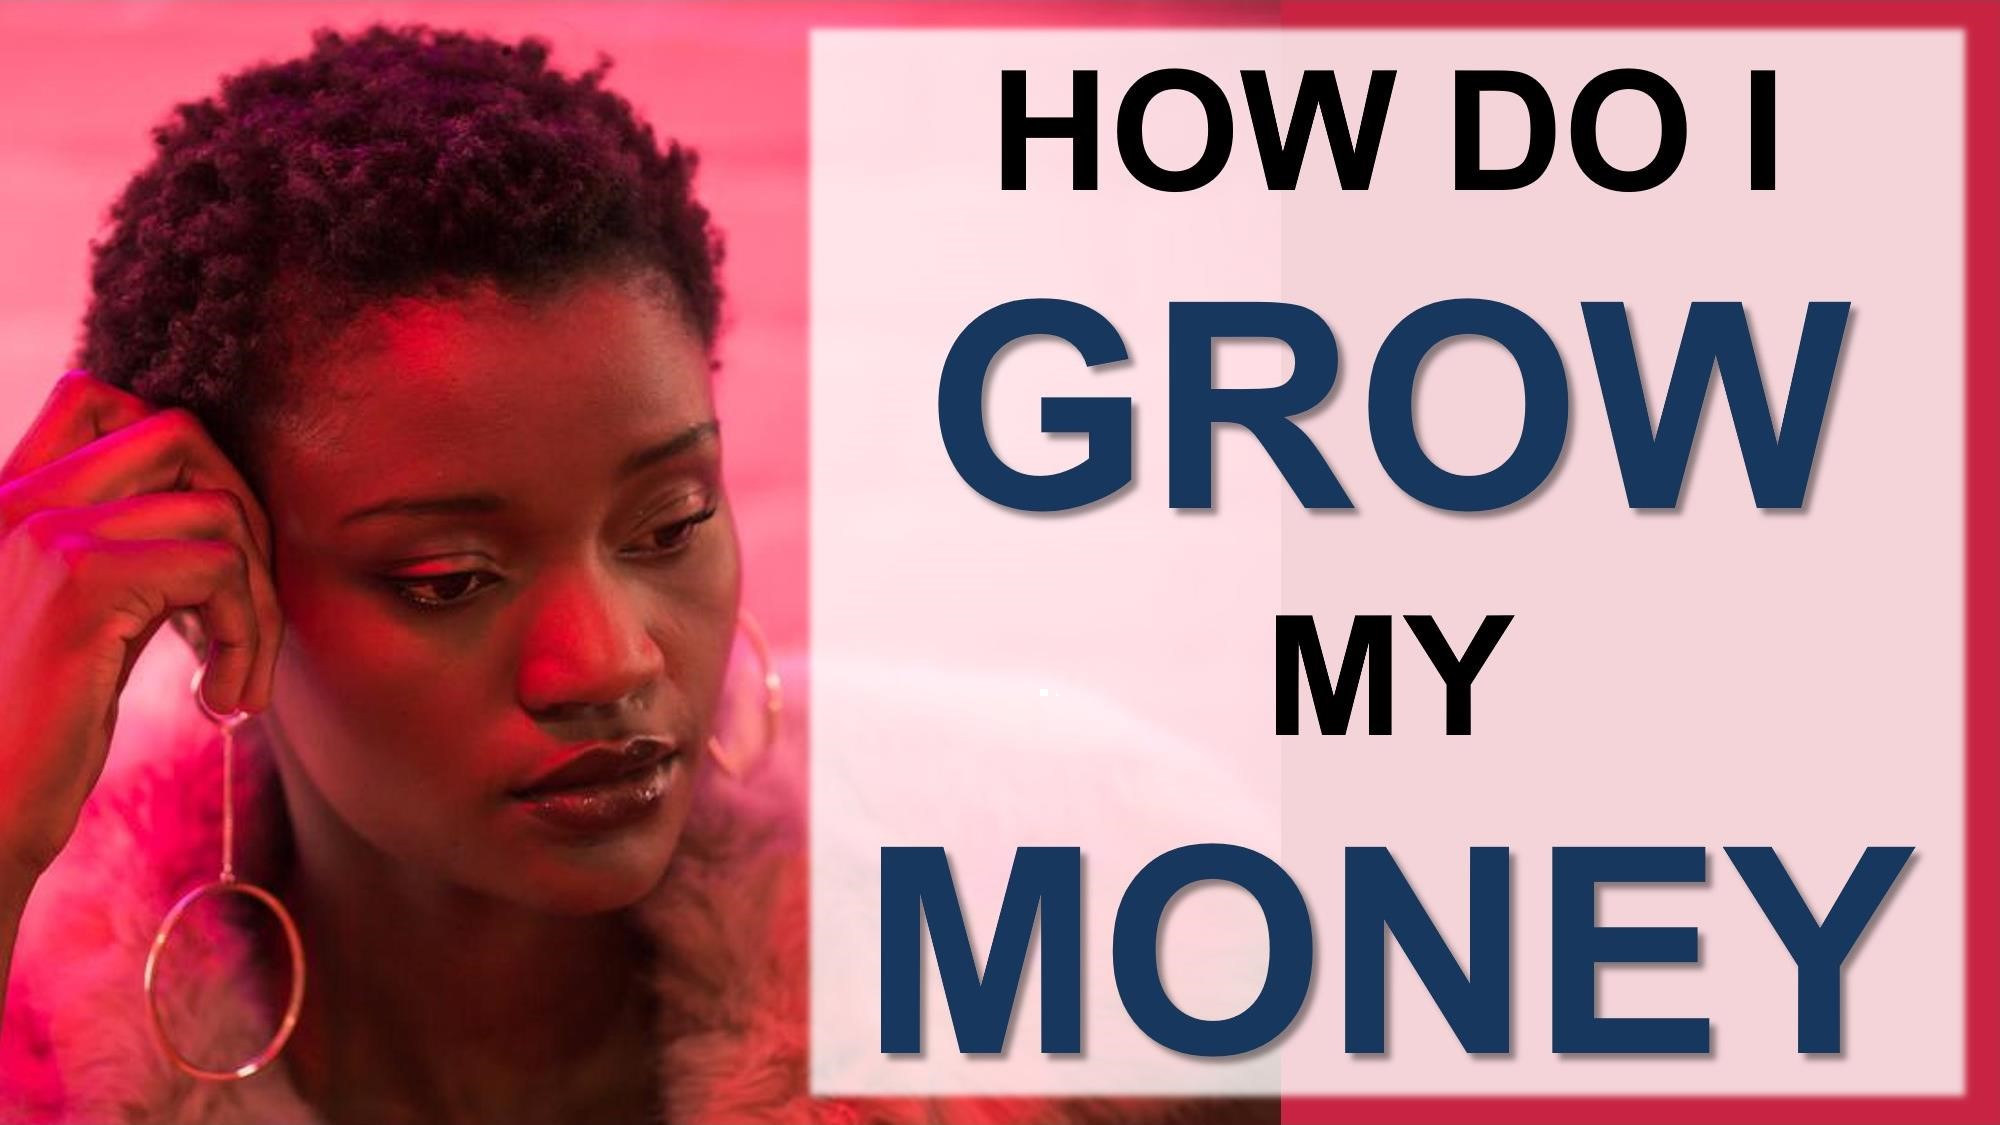 5 Ways to invest 100k - How do I grow my money #MoneySmarts